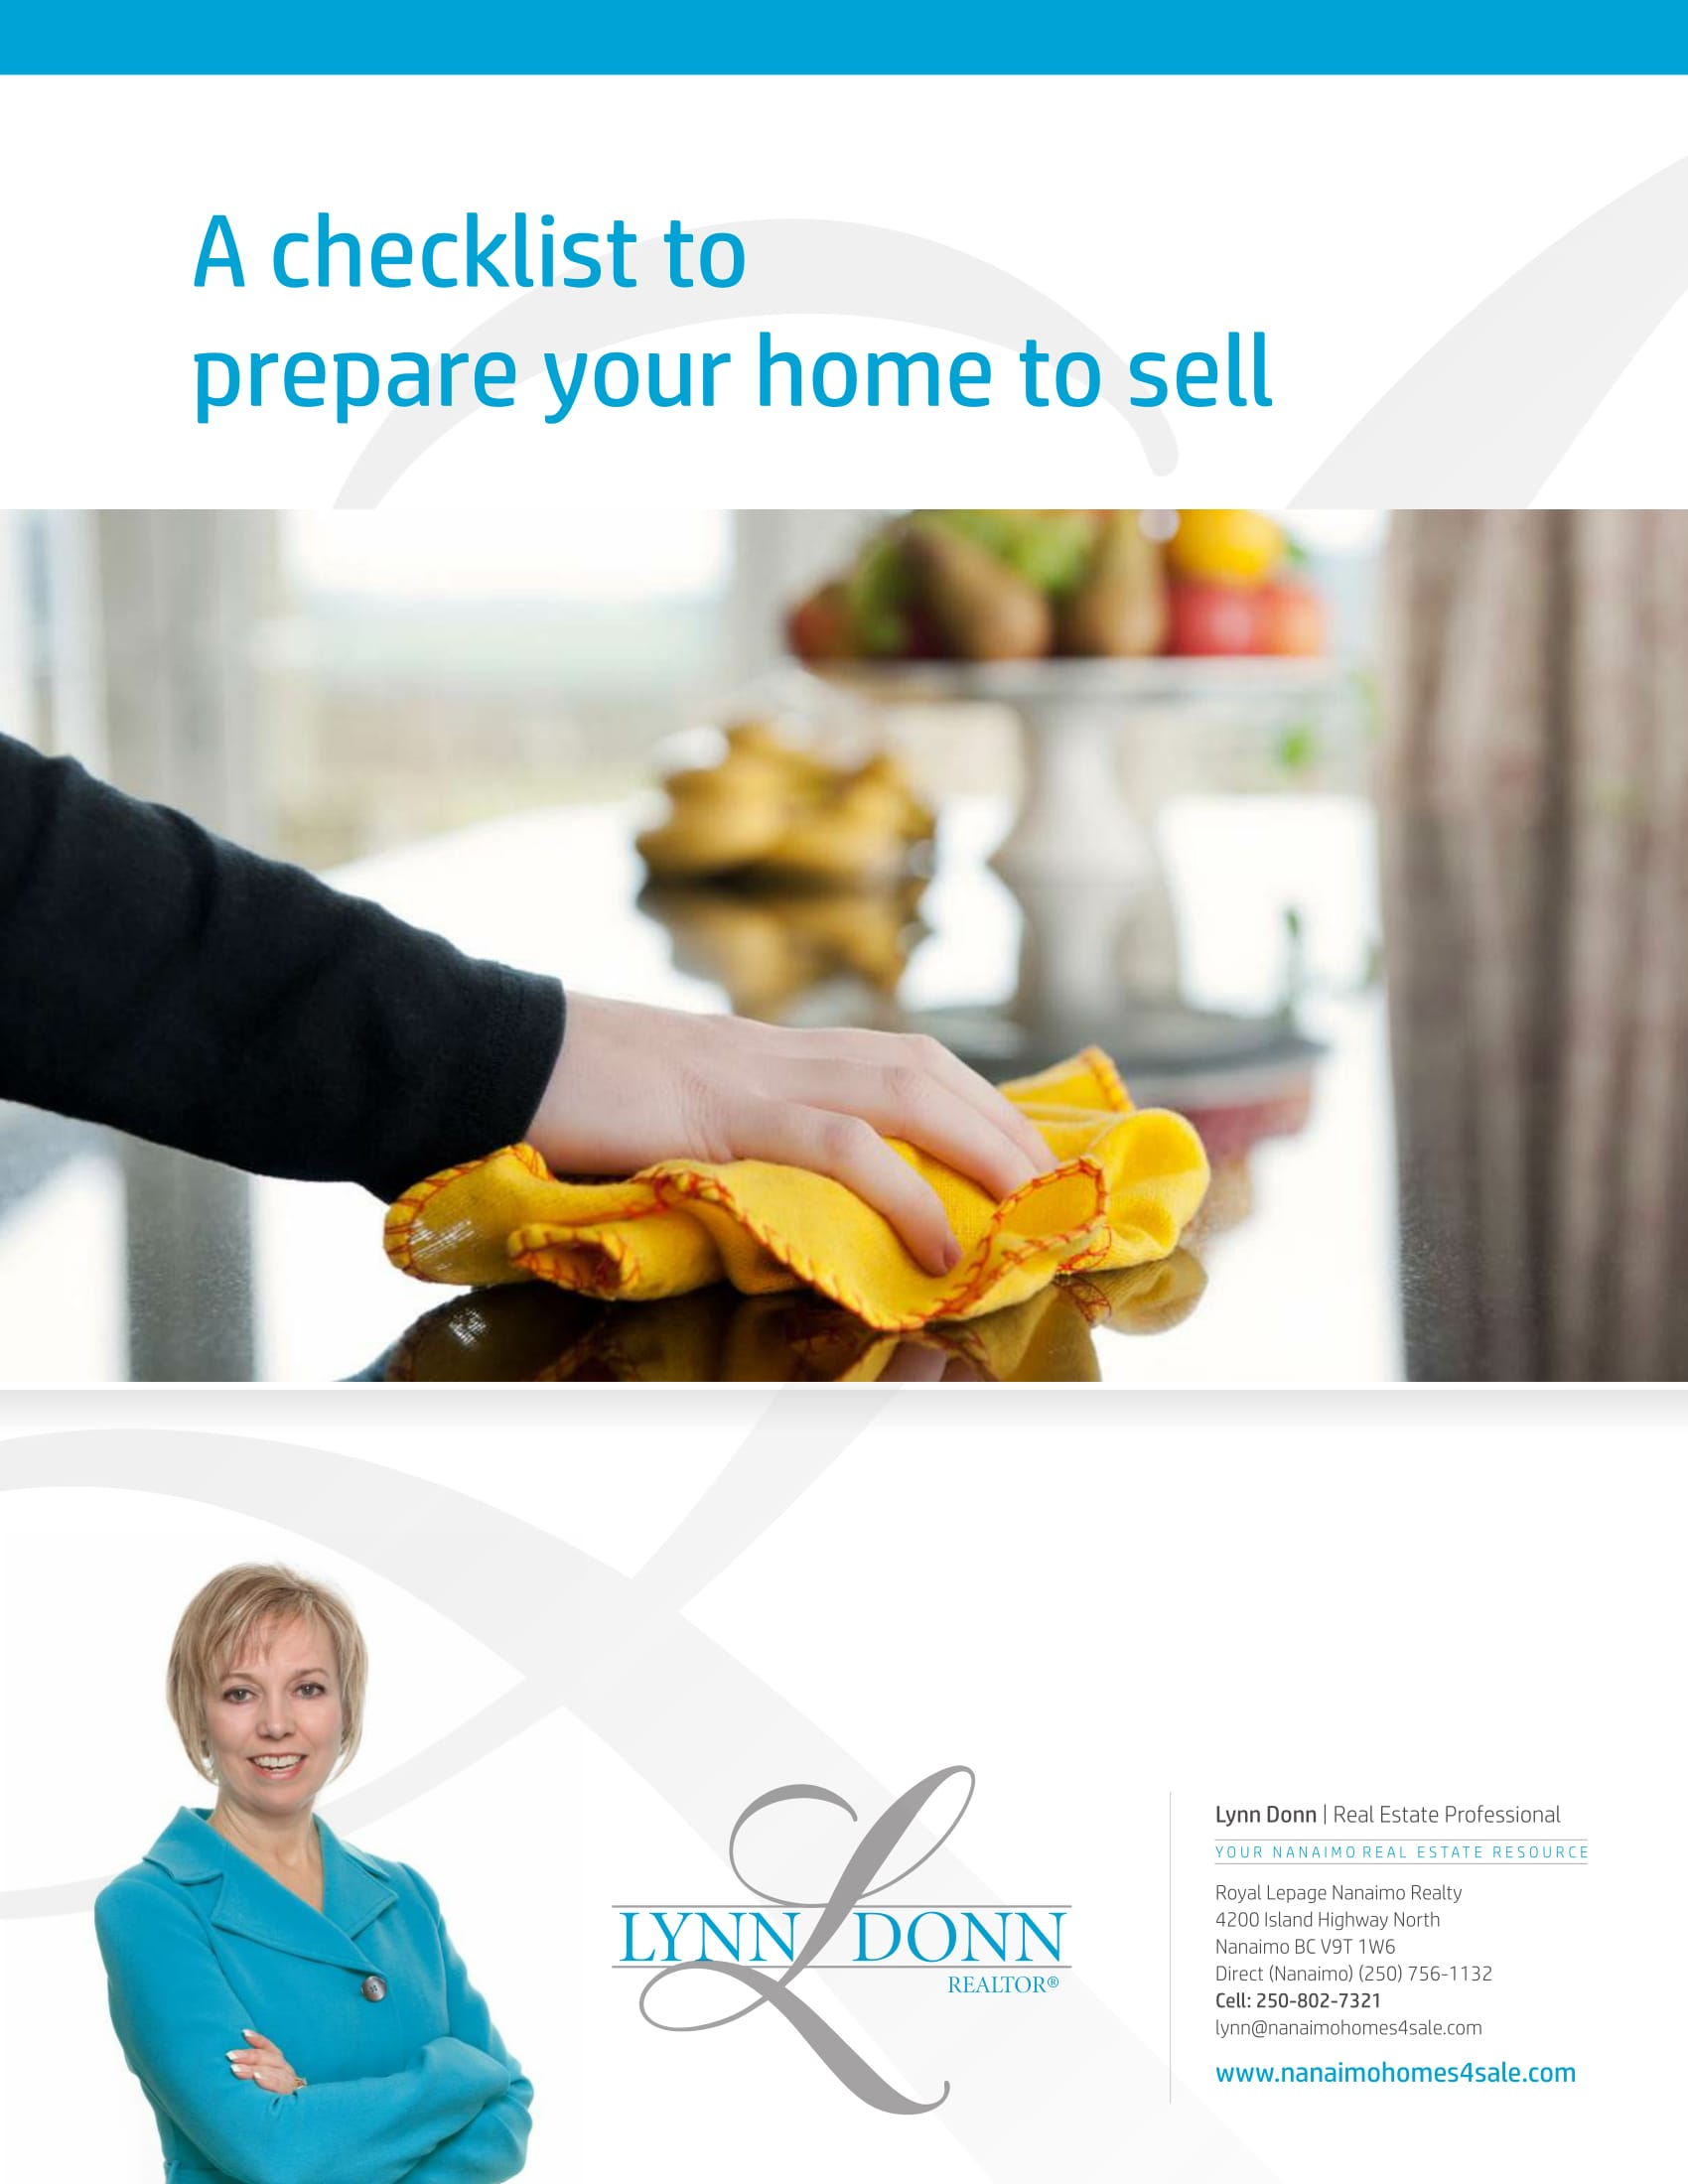 A Checklist To Prepare Your Home To Sell